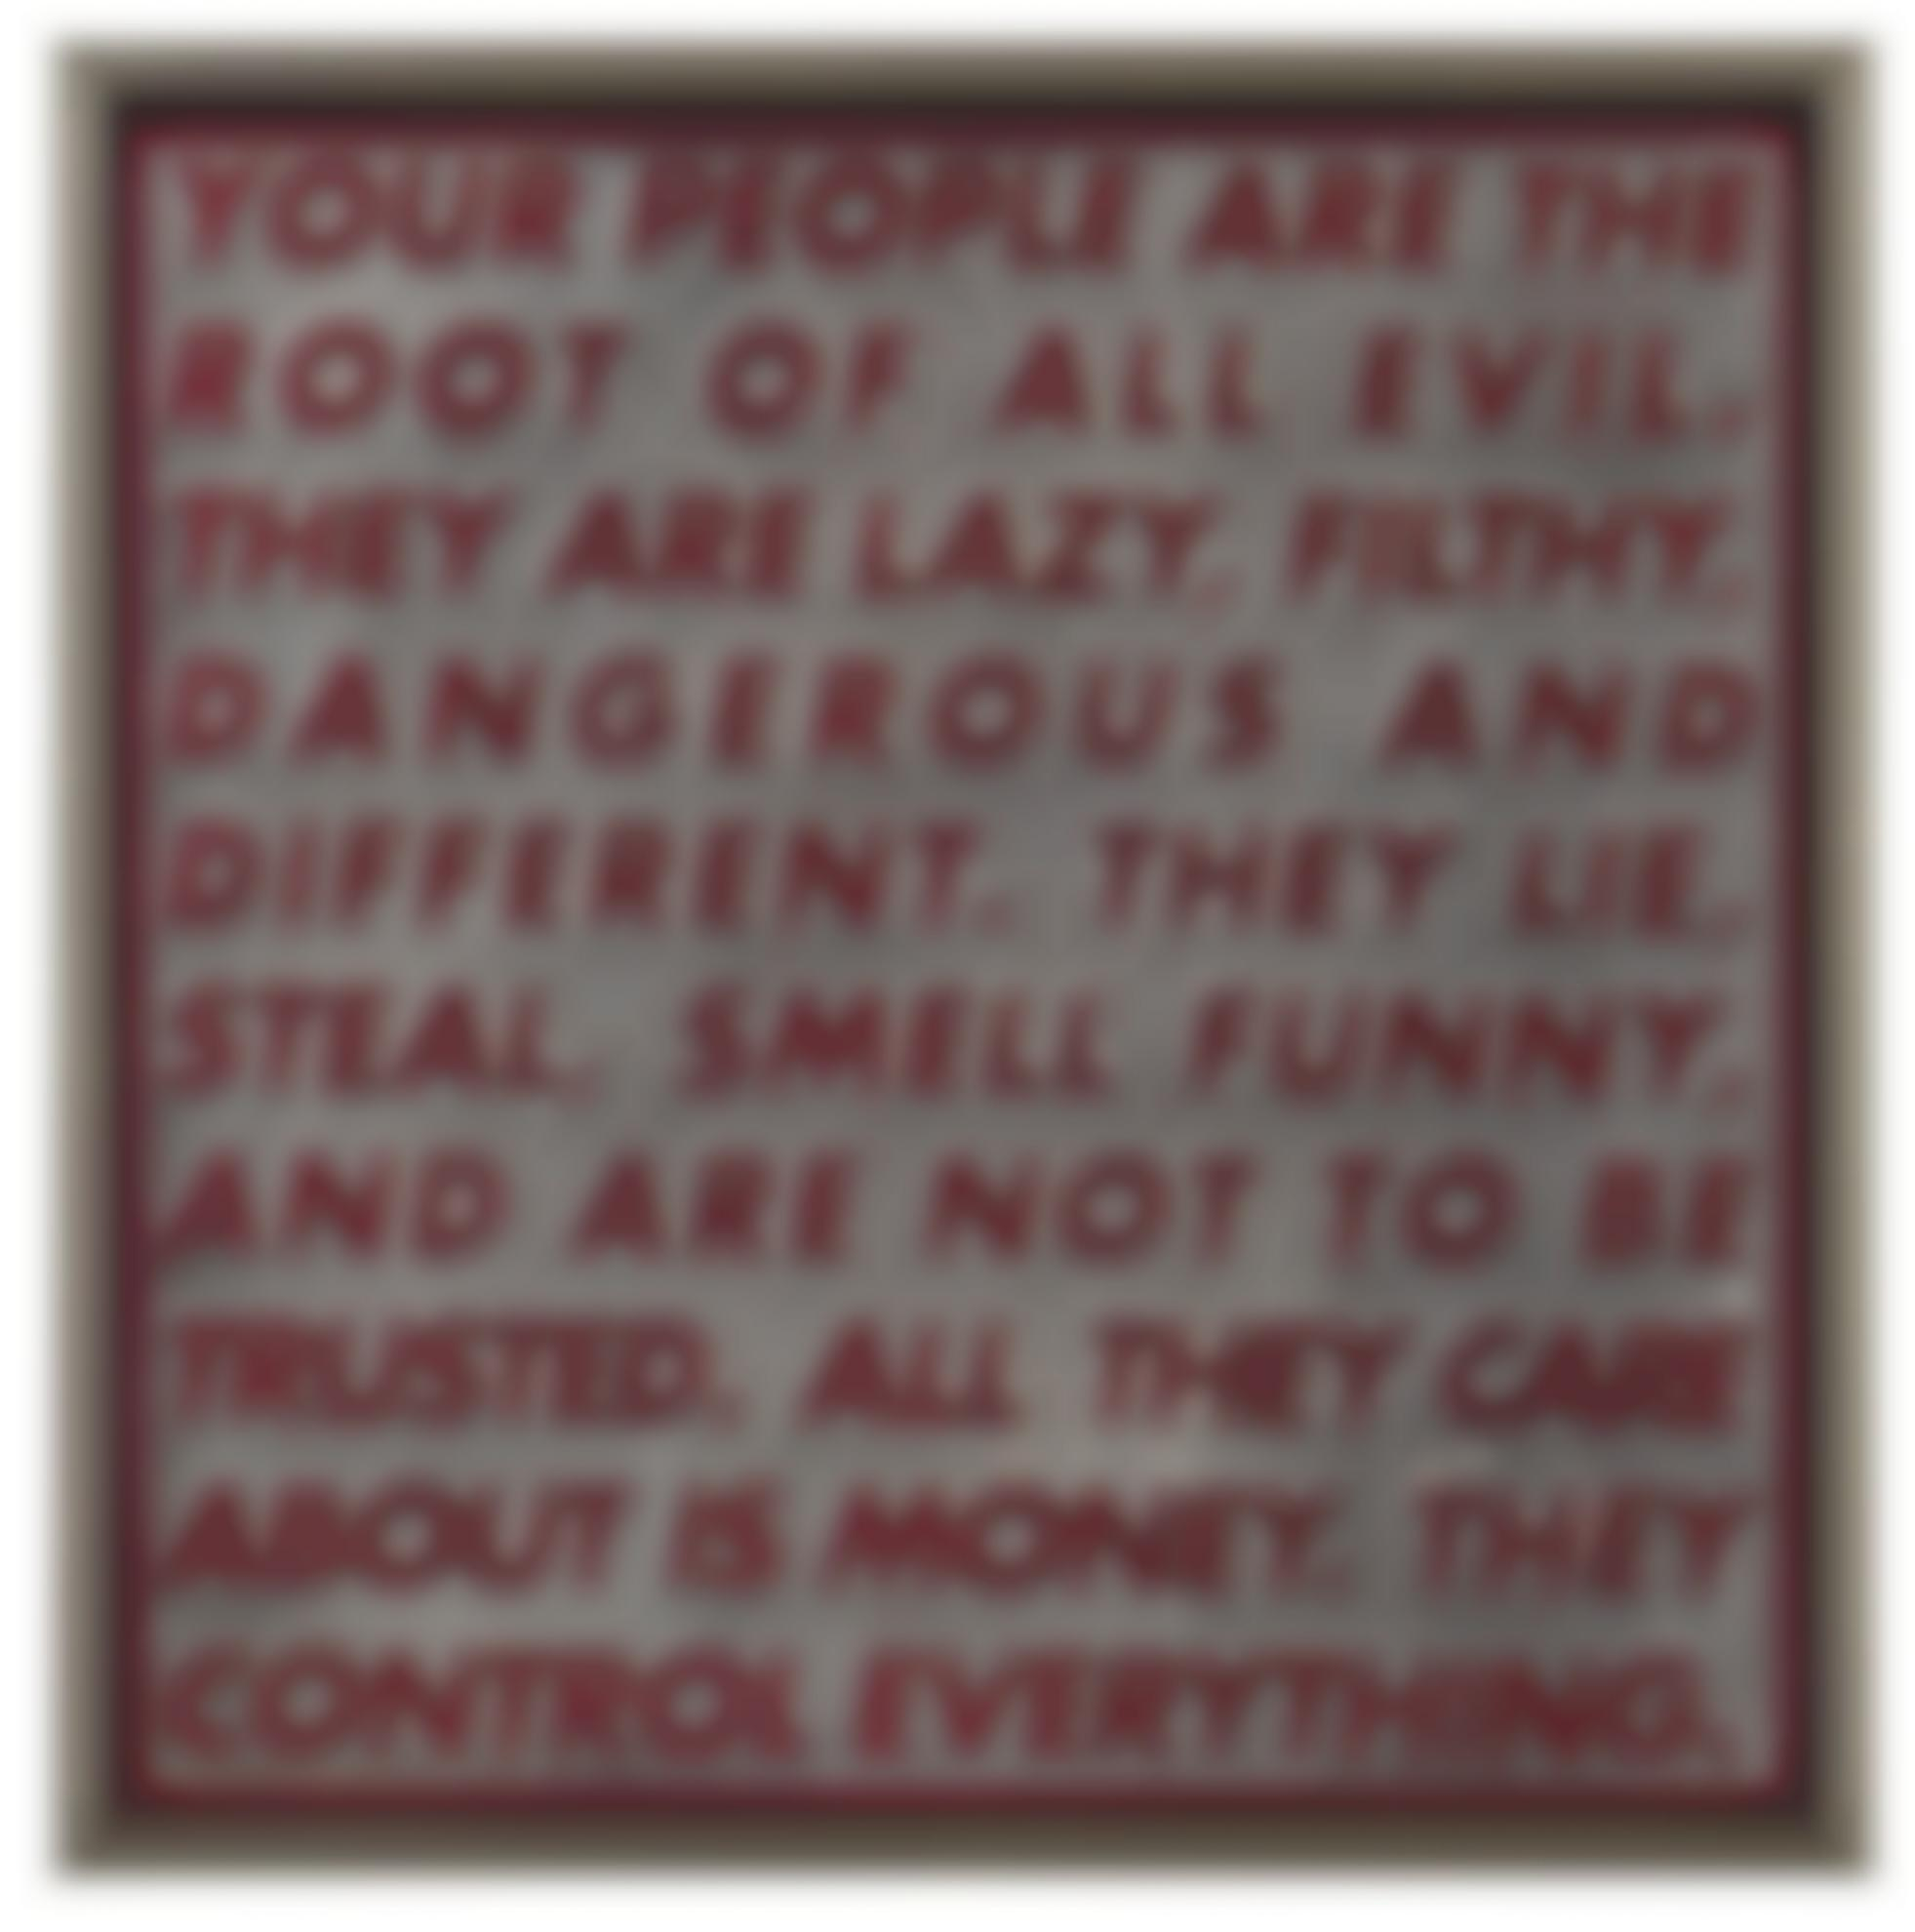 Barbara Kruger-Untitled (Your People Are The Root Of All Evil...)-1996